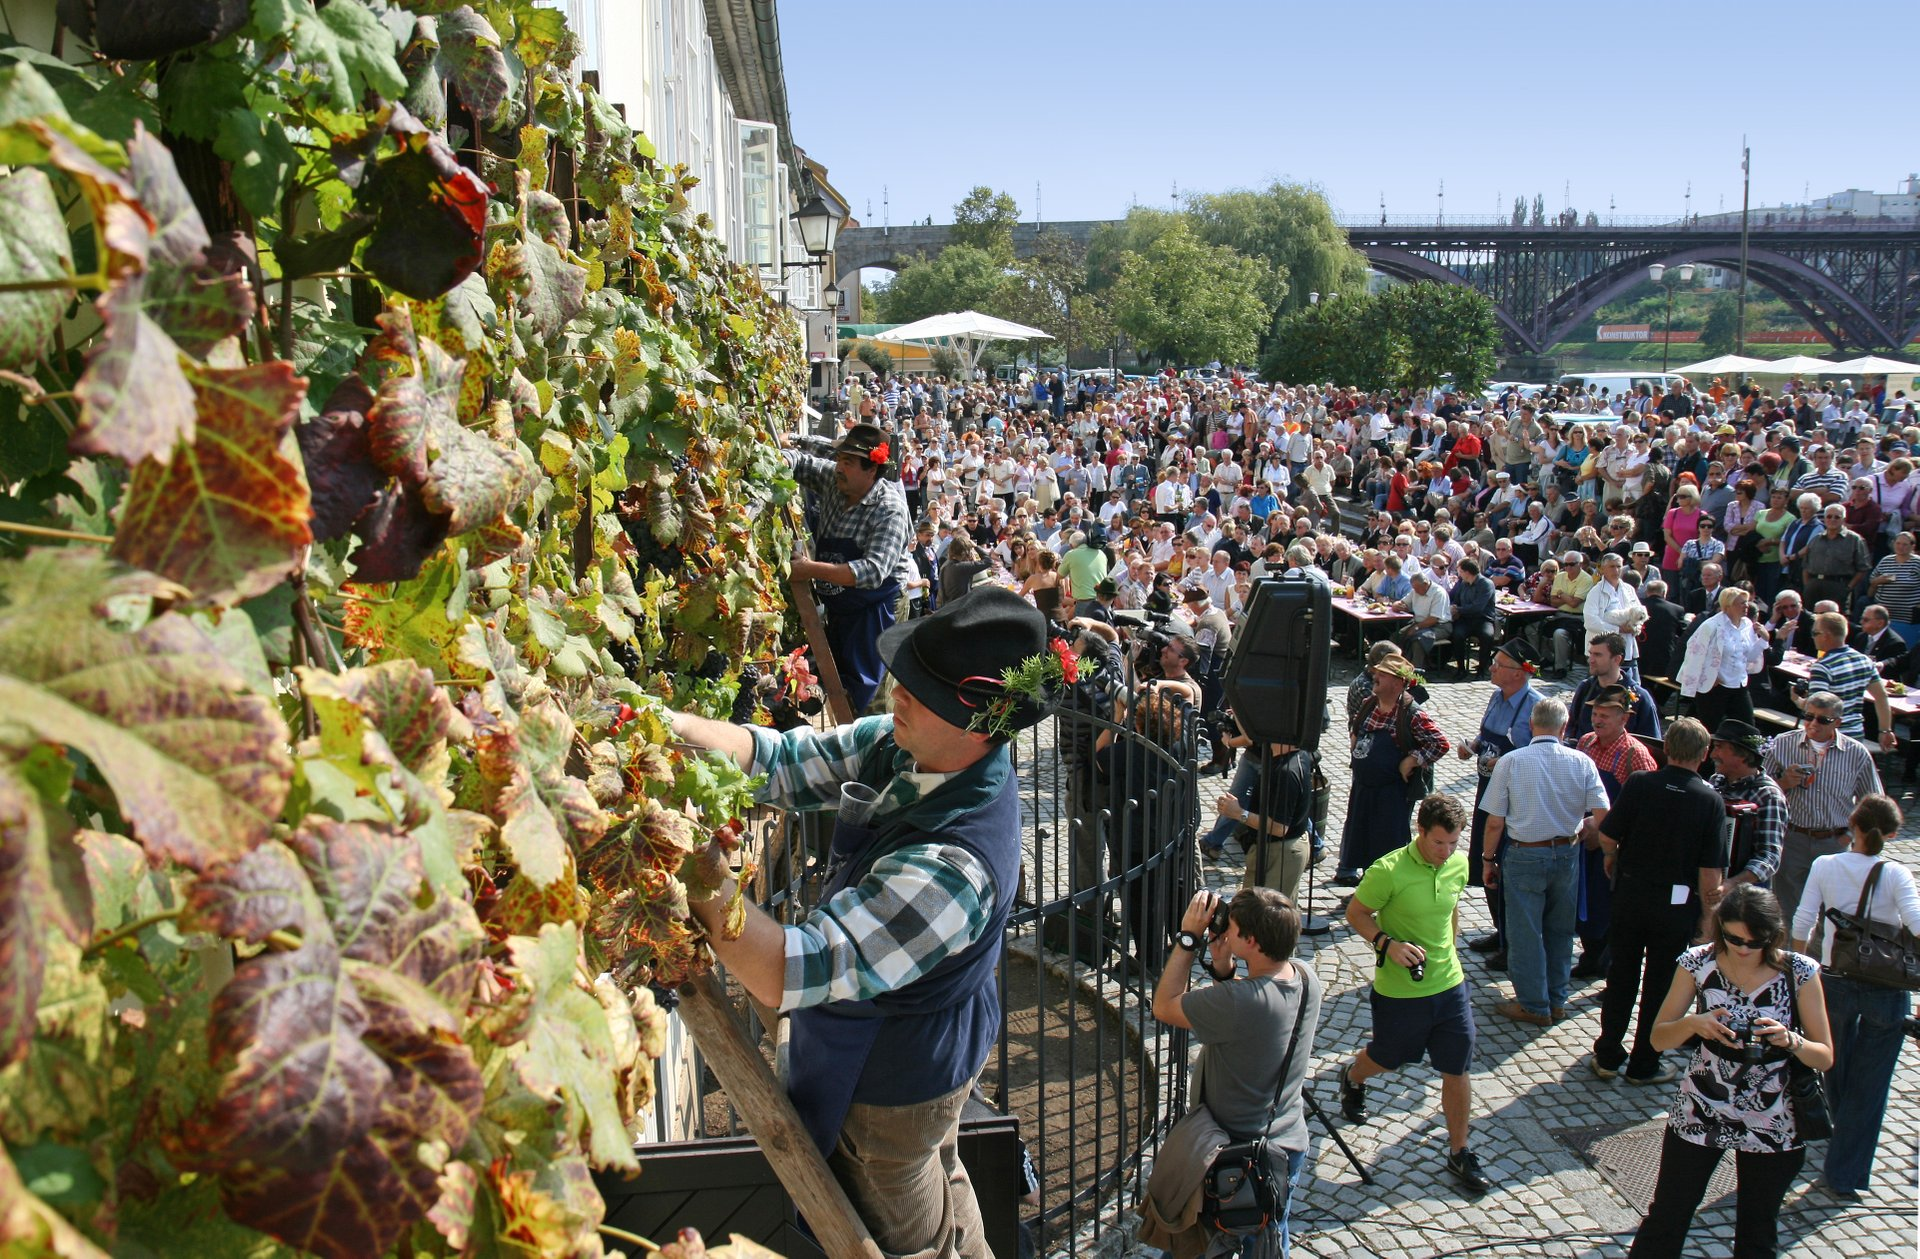 The Old Vine Festival in Maribor 2020